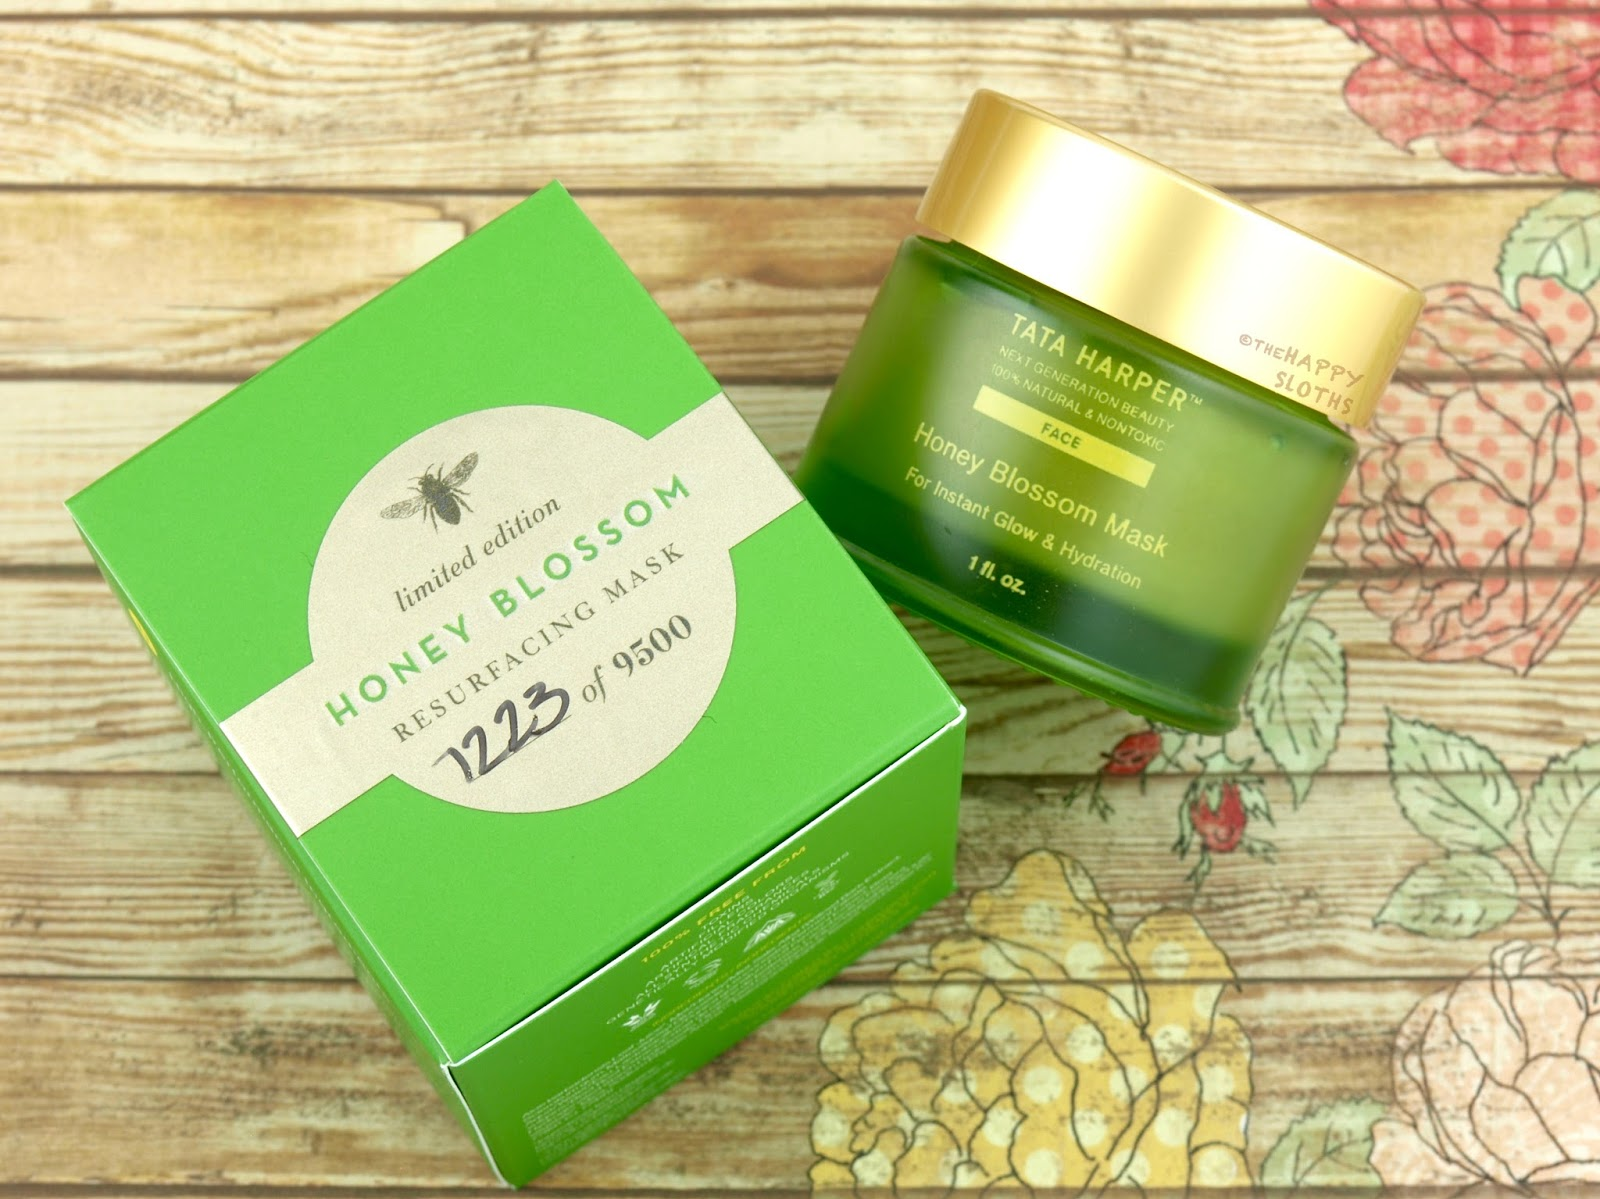 Tata Harper Limited Edition Honey Blossom Mask: Review